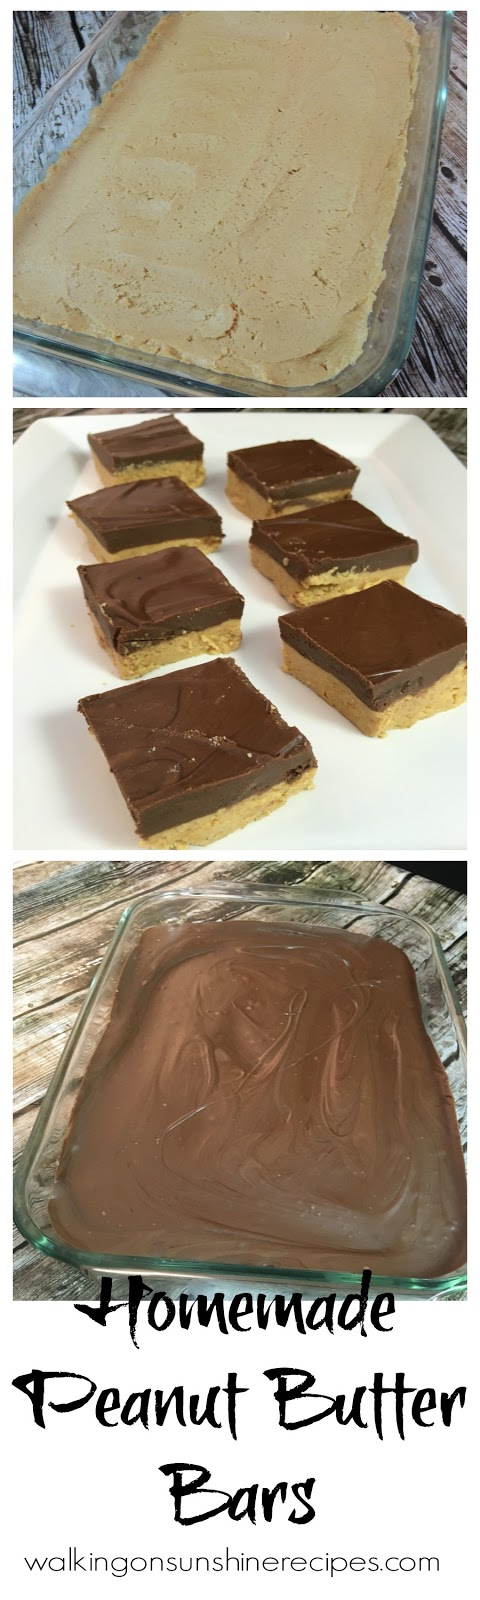 Homemade Peanut Butter Bars Recipe.